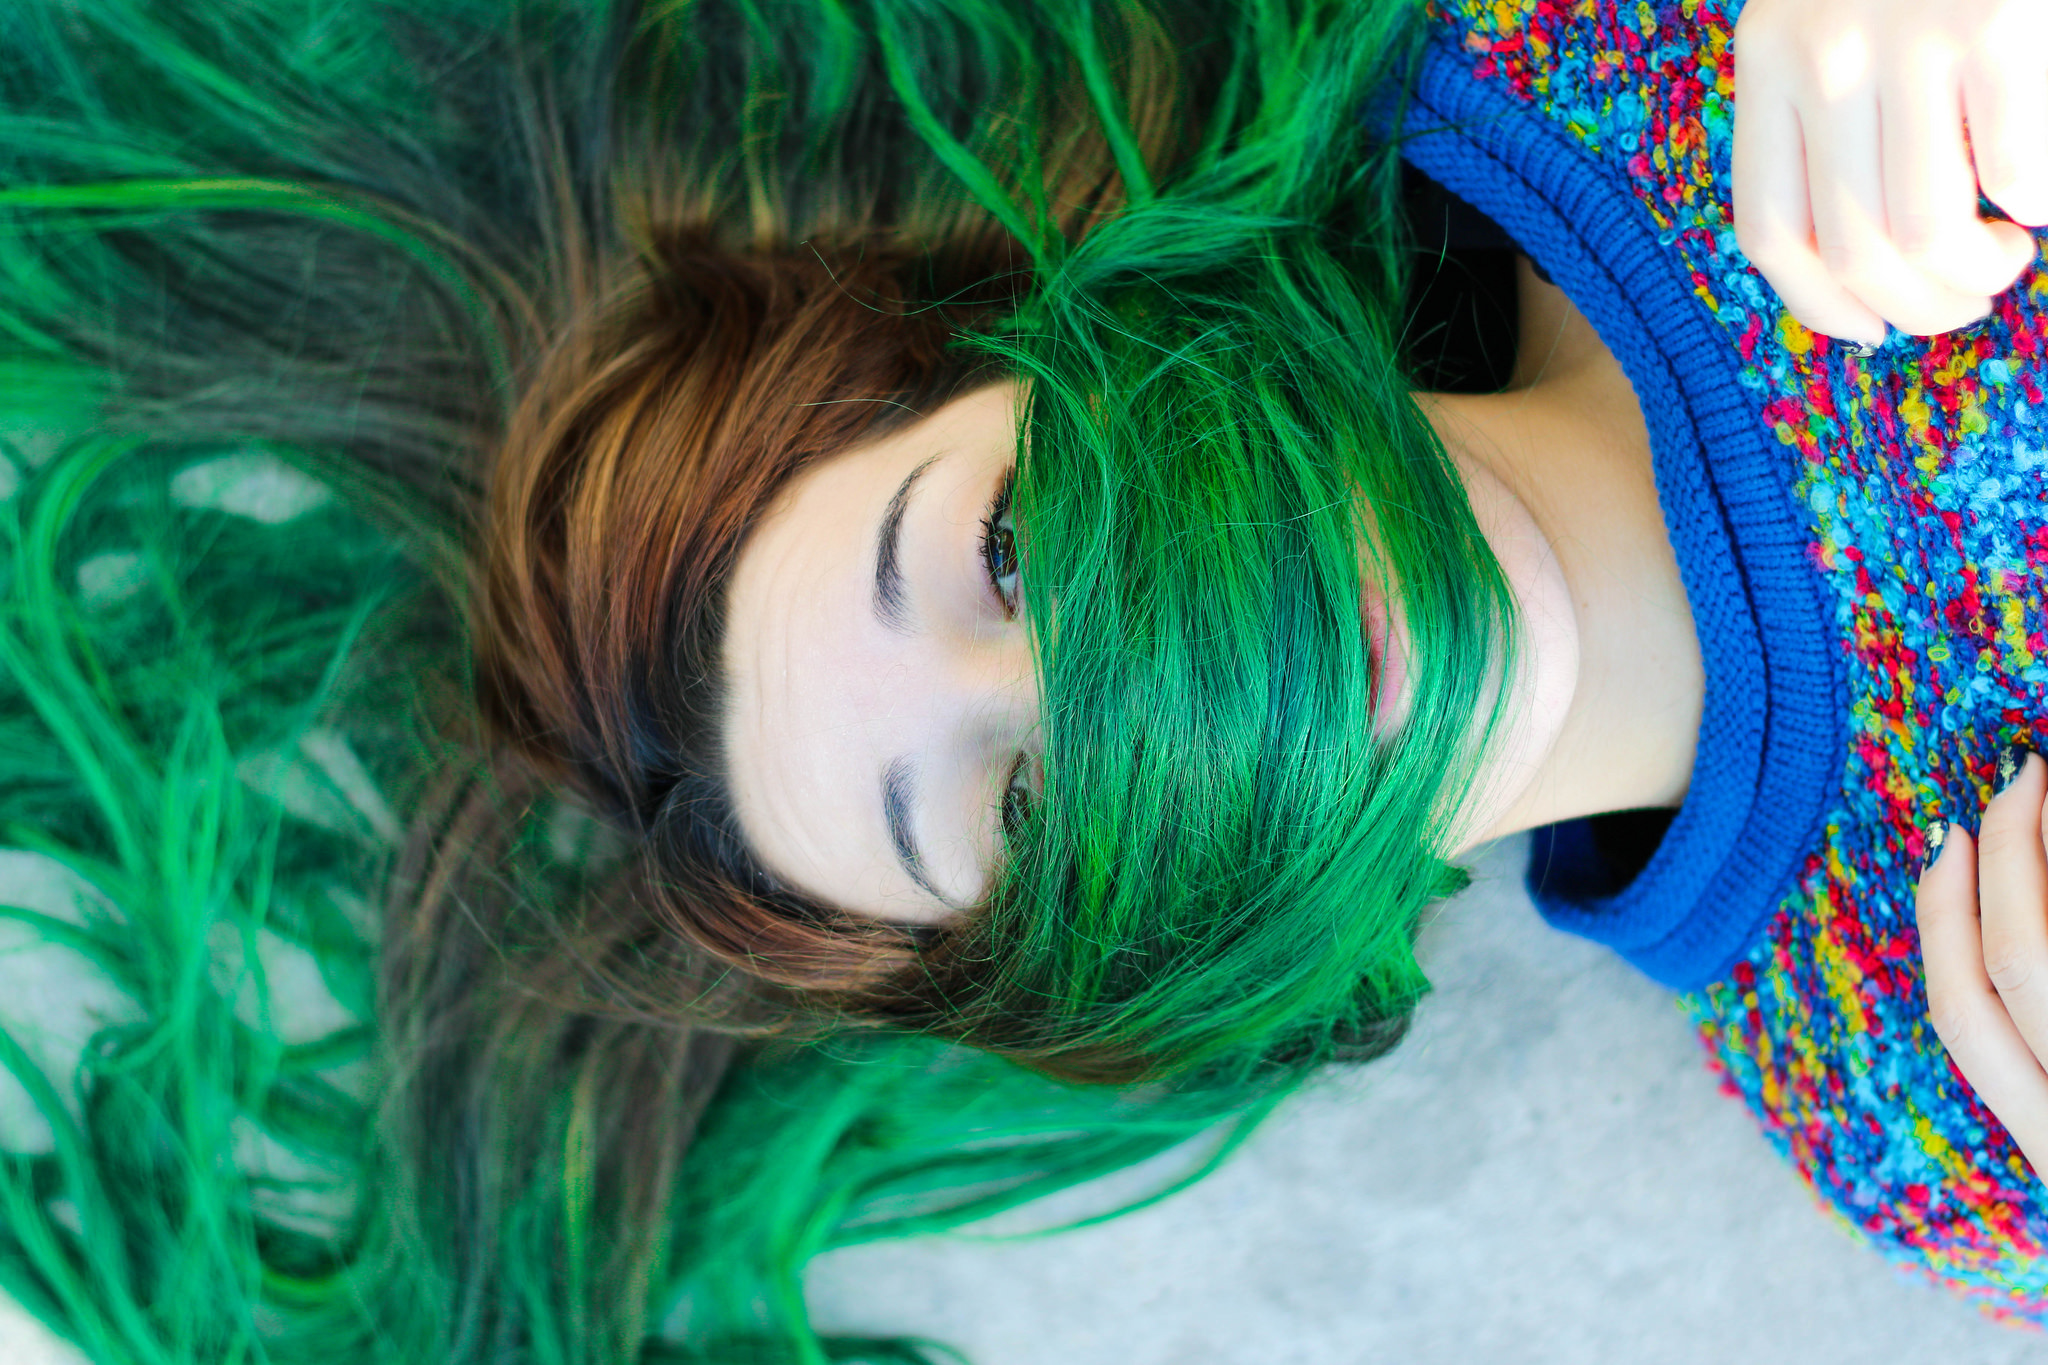 What\'s Wrong with Hair Dye? Chemicals Linked to Dangerous Reactions